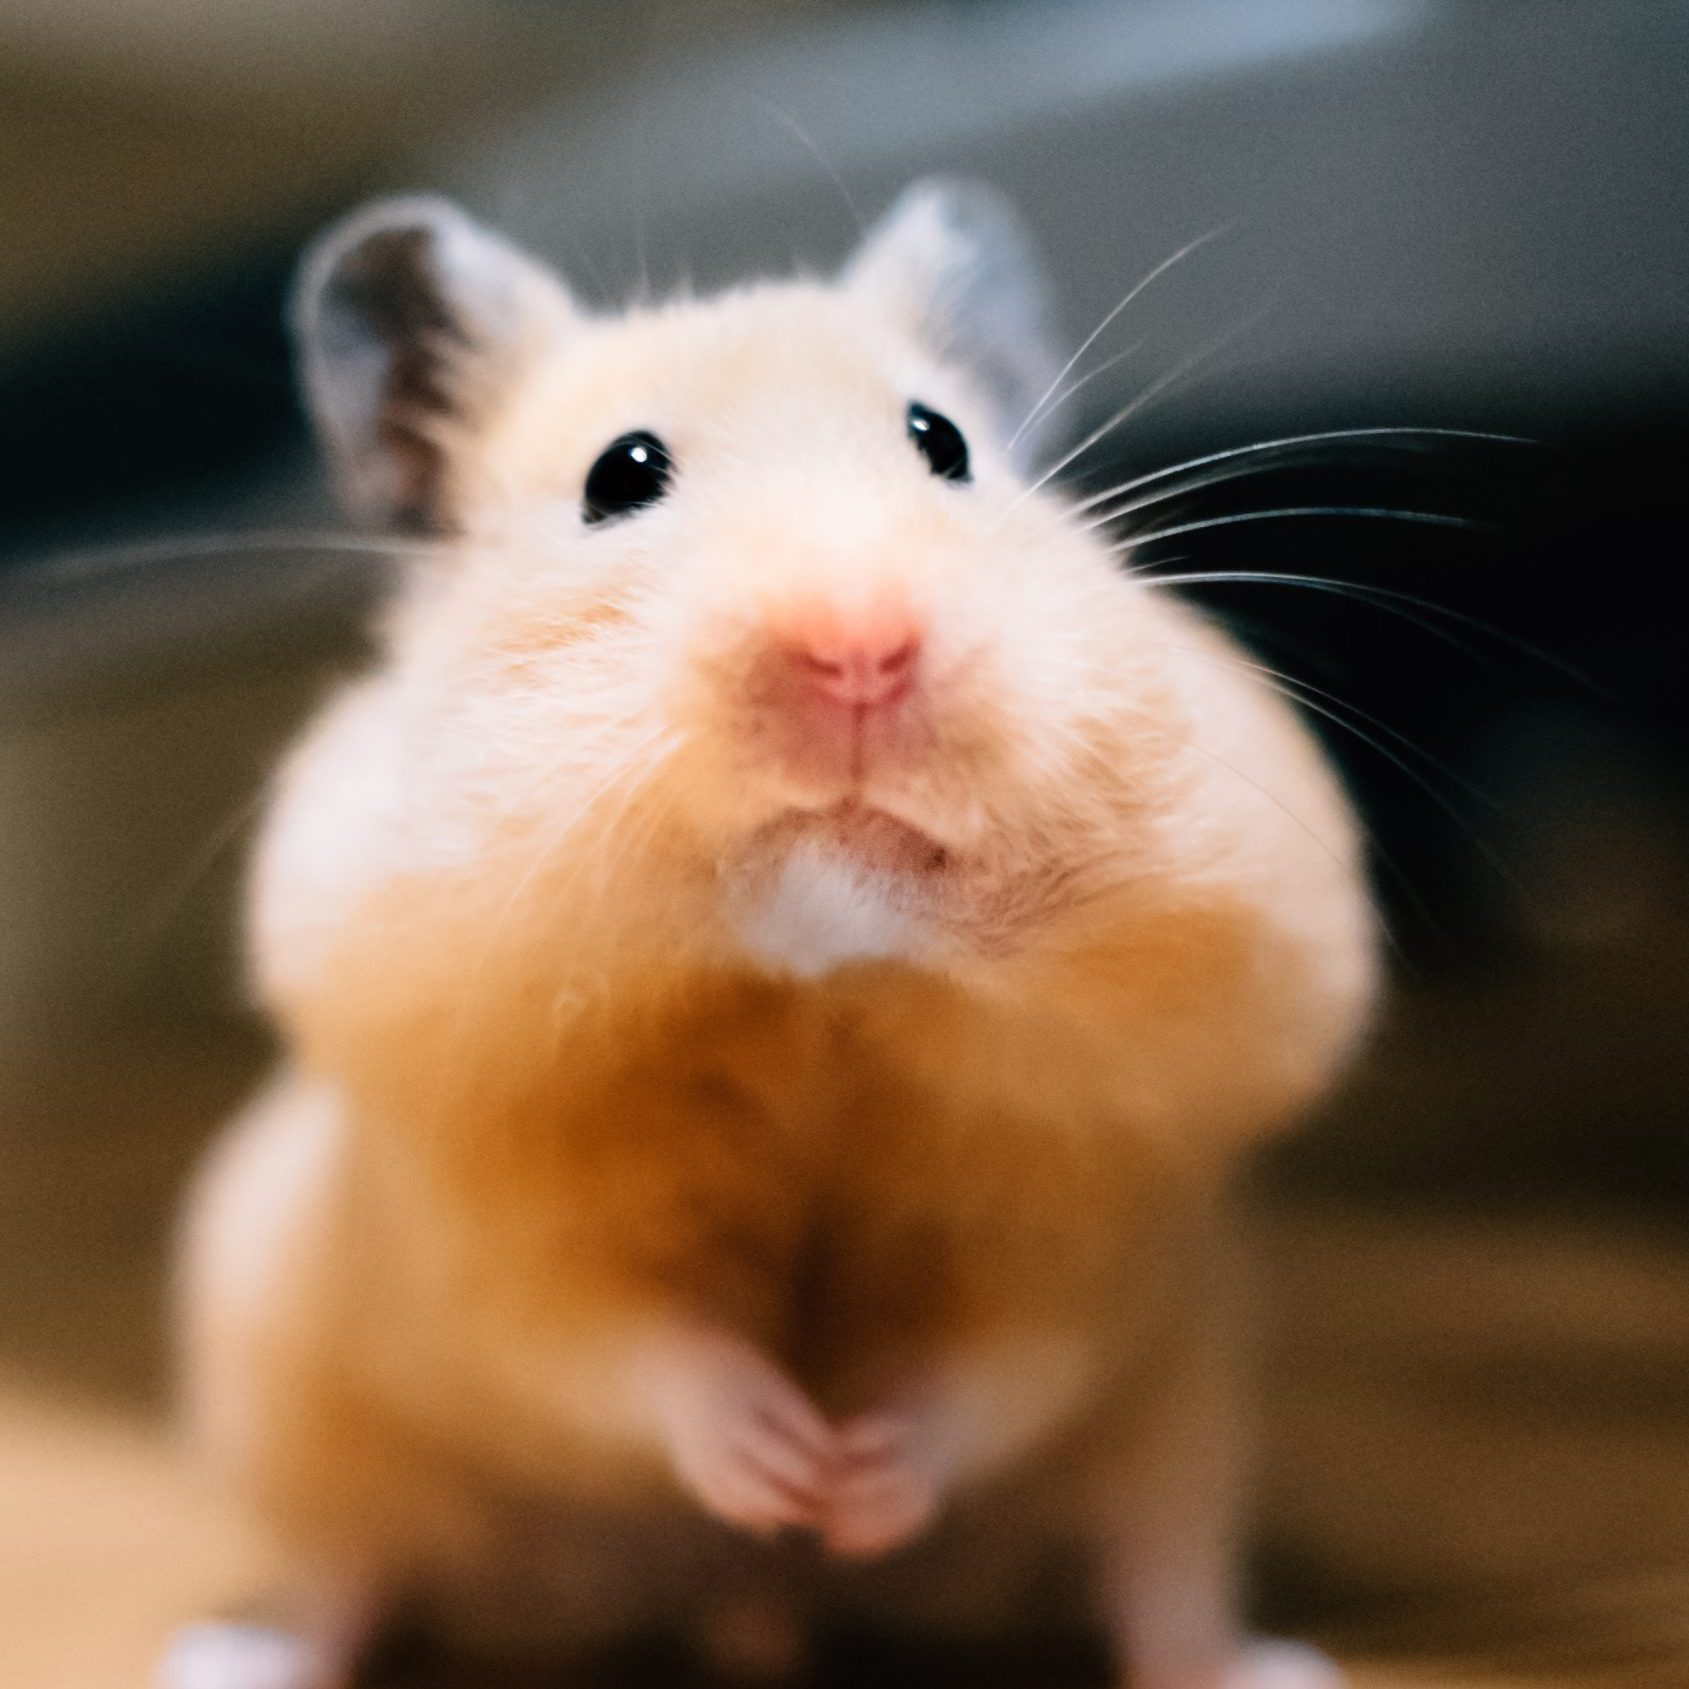 hamsters have cheek pouches